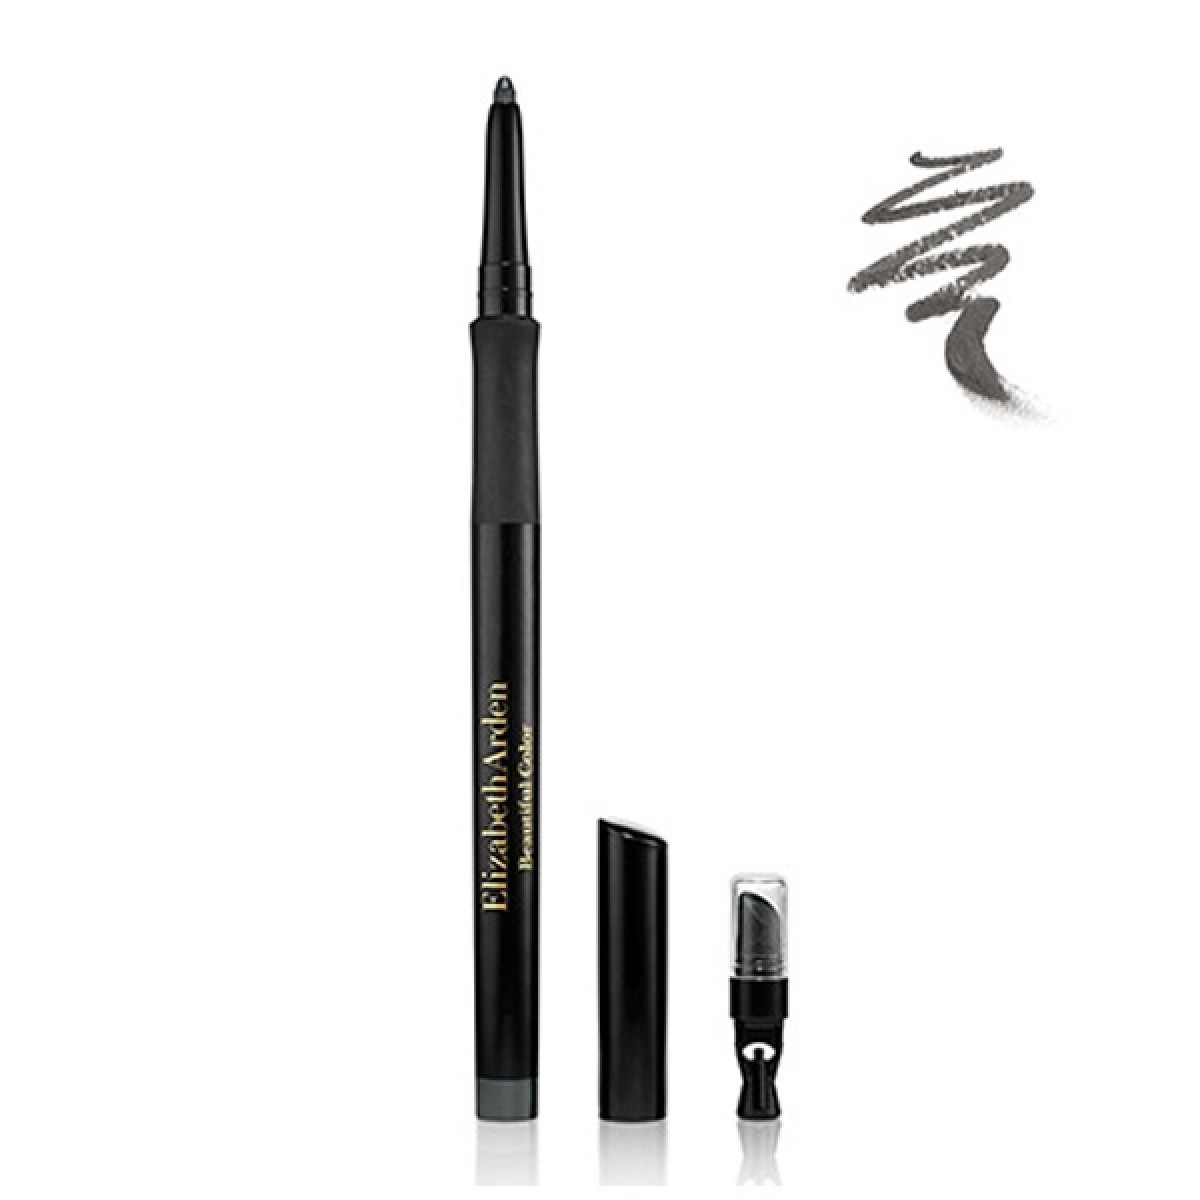 Elizabeth-Arden-BEAUTIFUL-COLOR-precision-glide-eye-liner--402-slate-60889.jpg